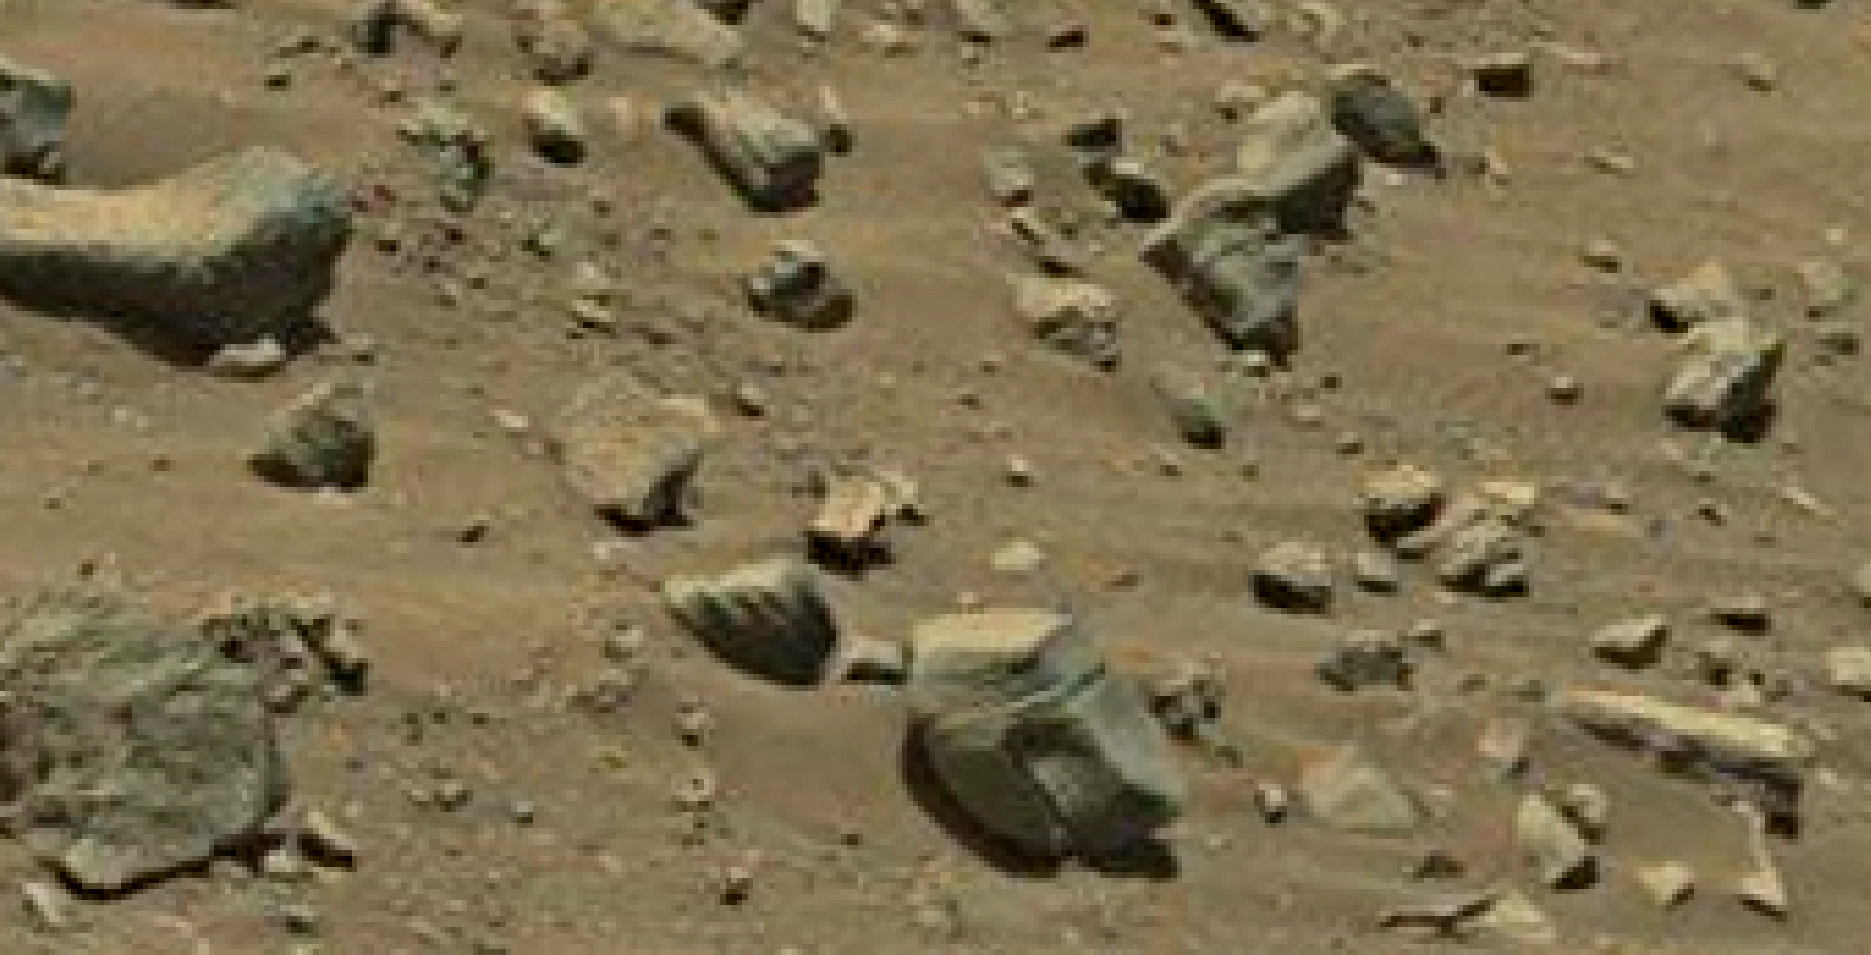 mars sol 1399 anomaly artifacts 3 was life on mars